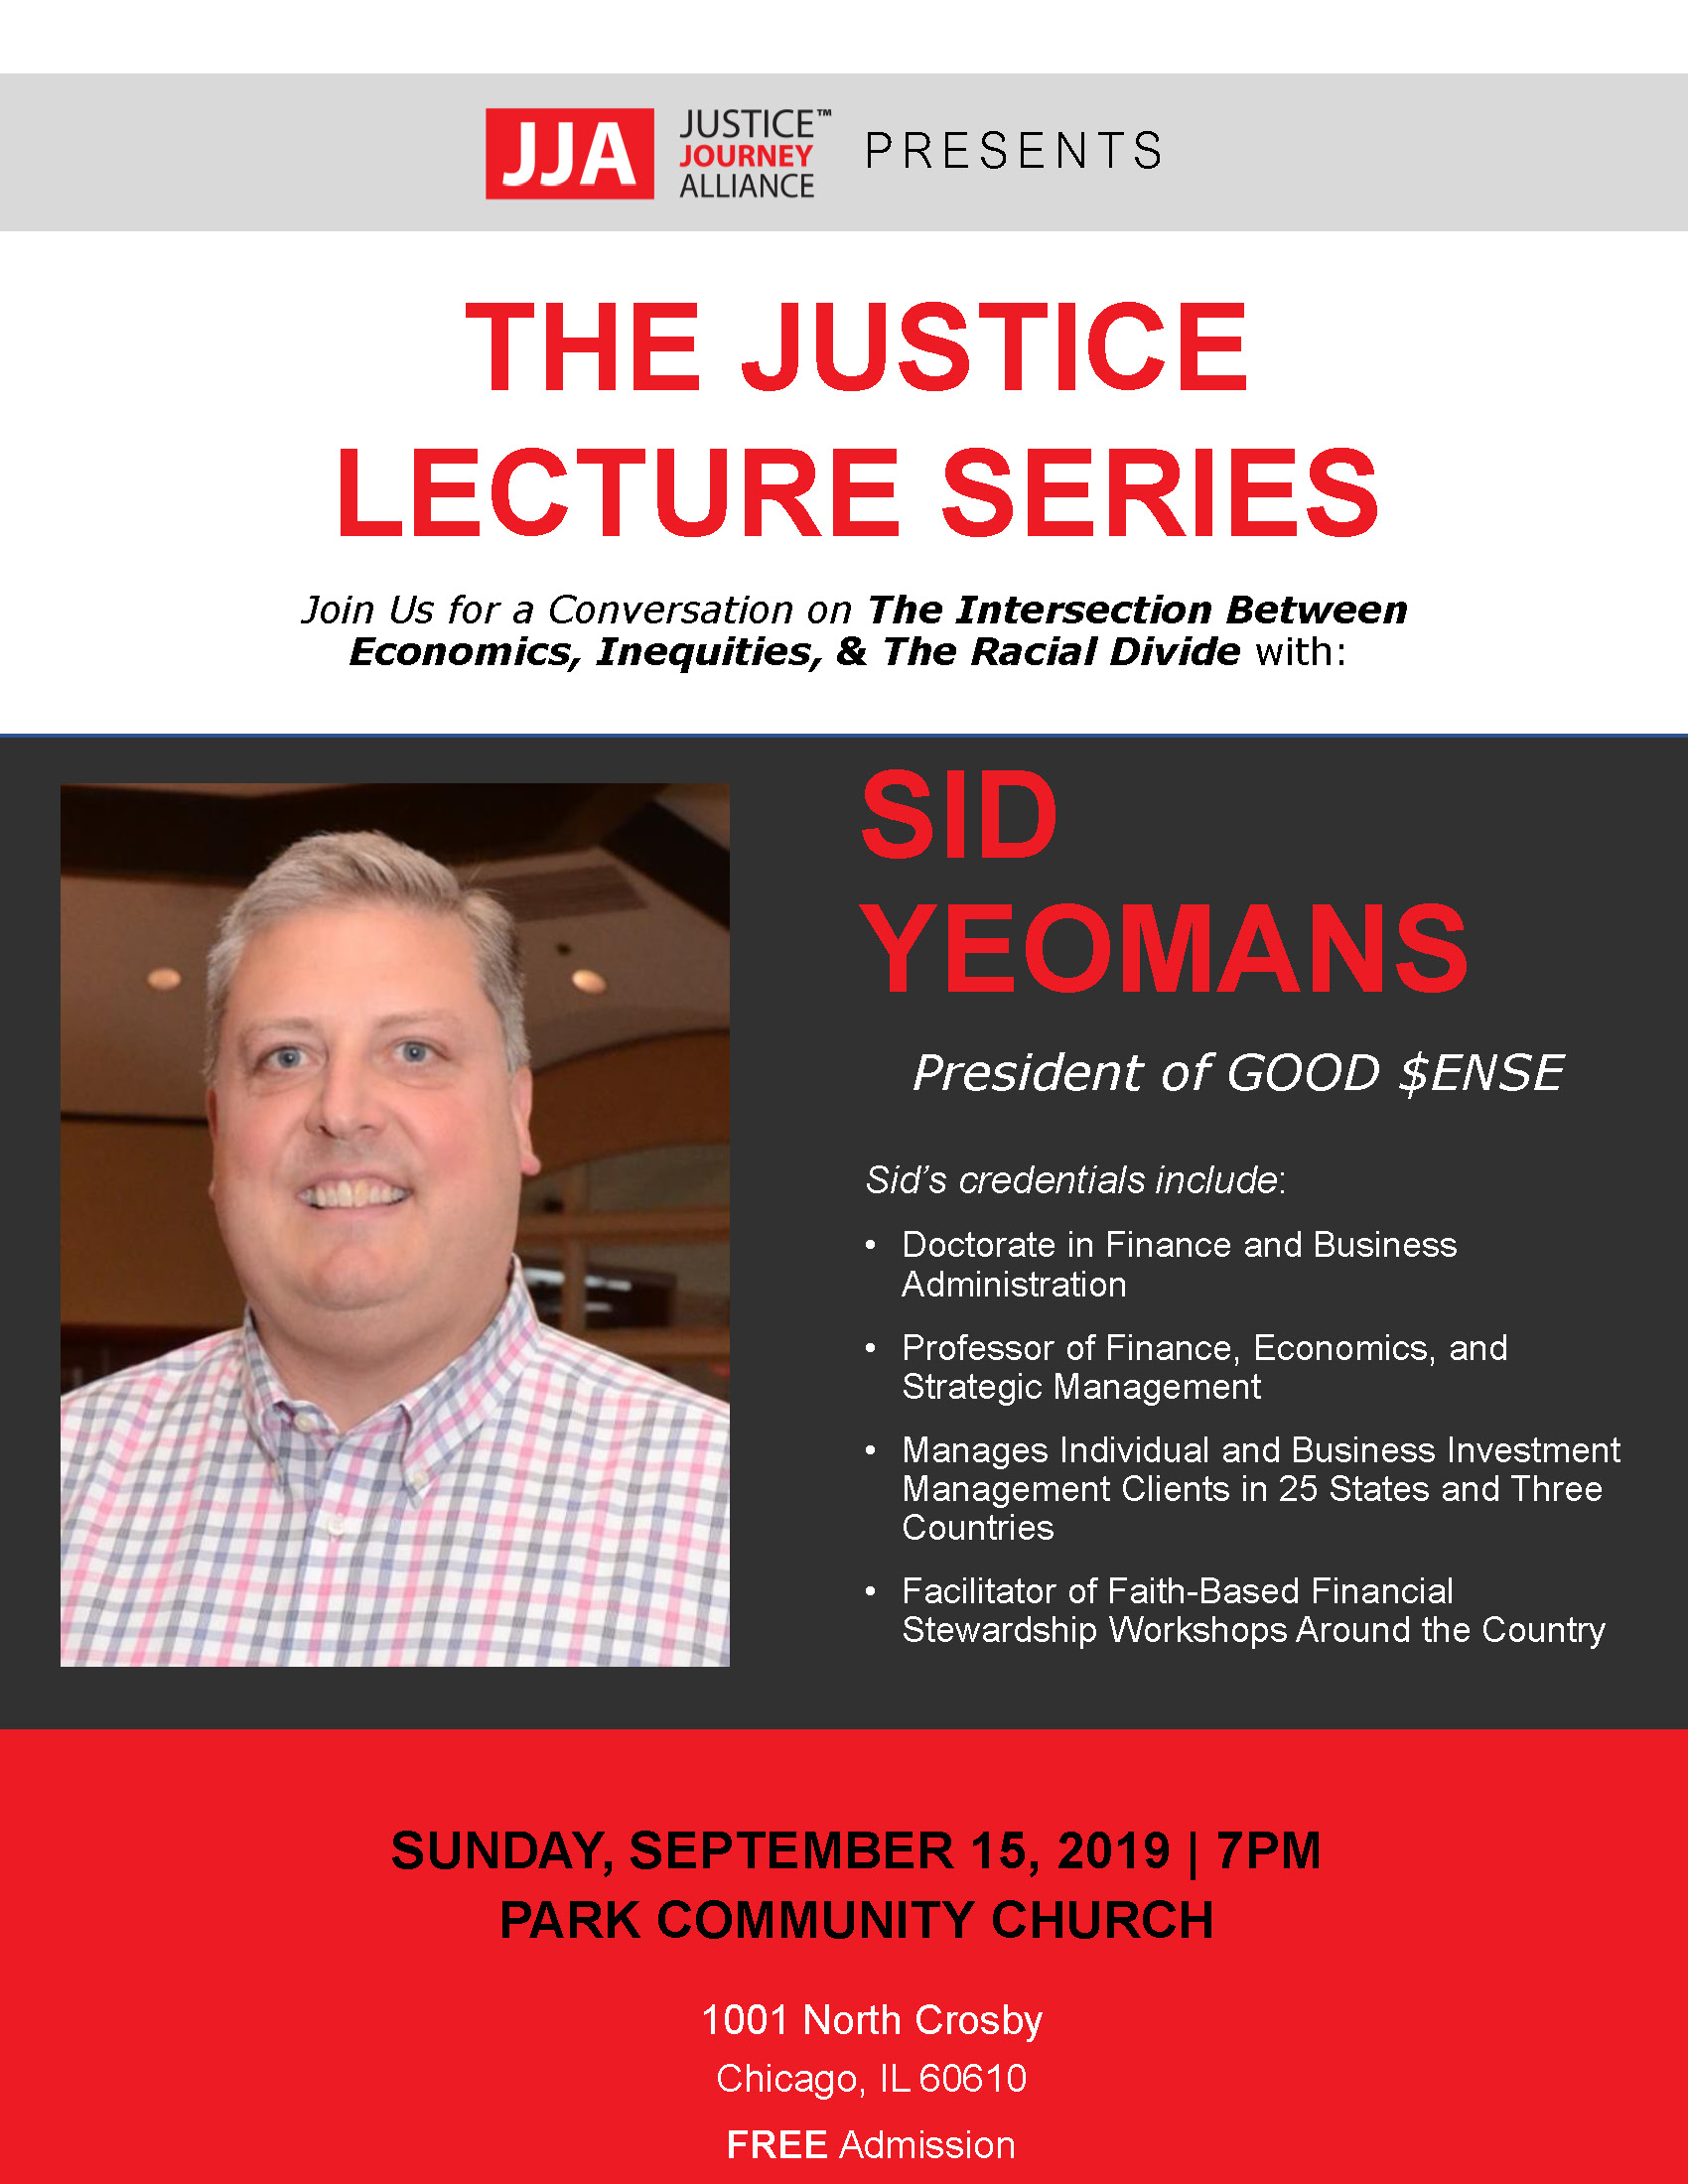 The Justice Lecture Series - Sid Yeomans